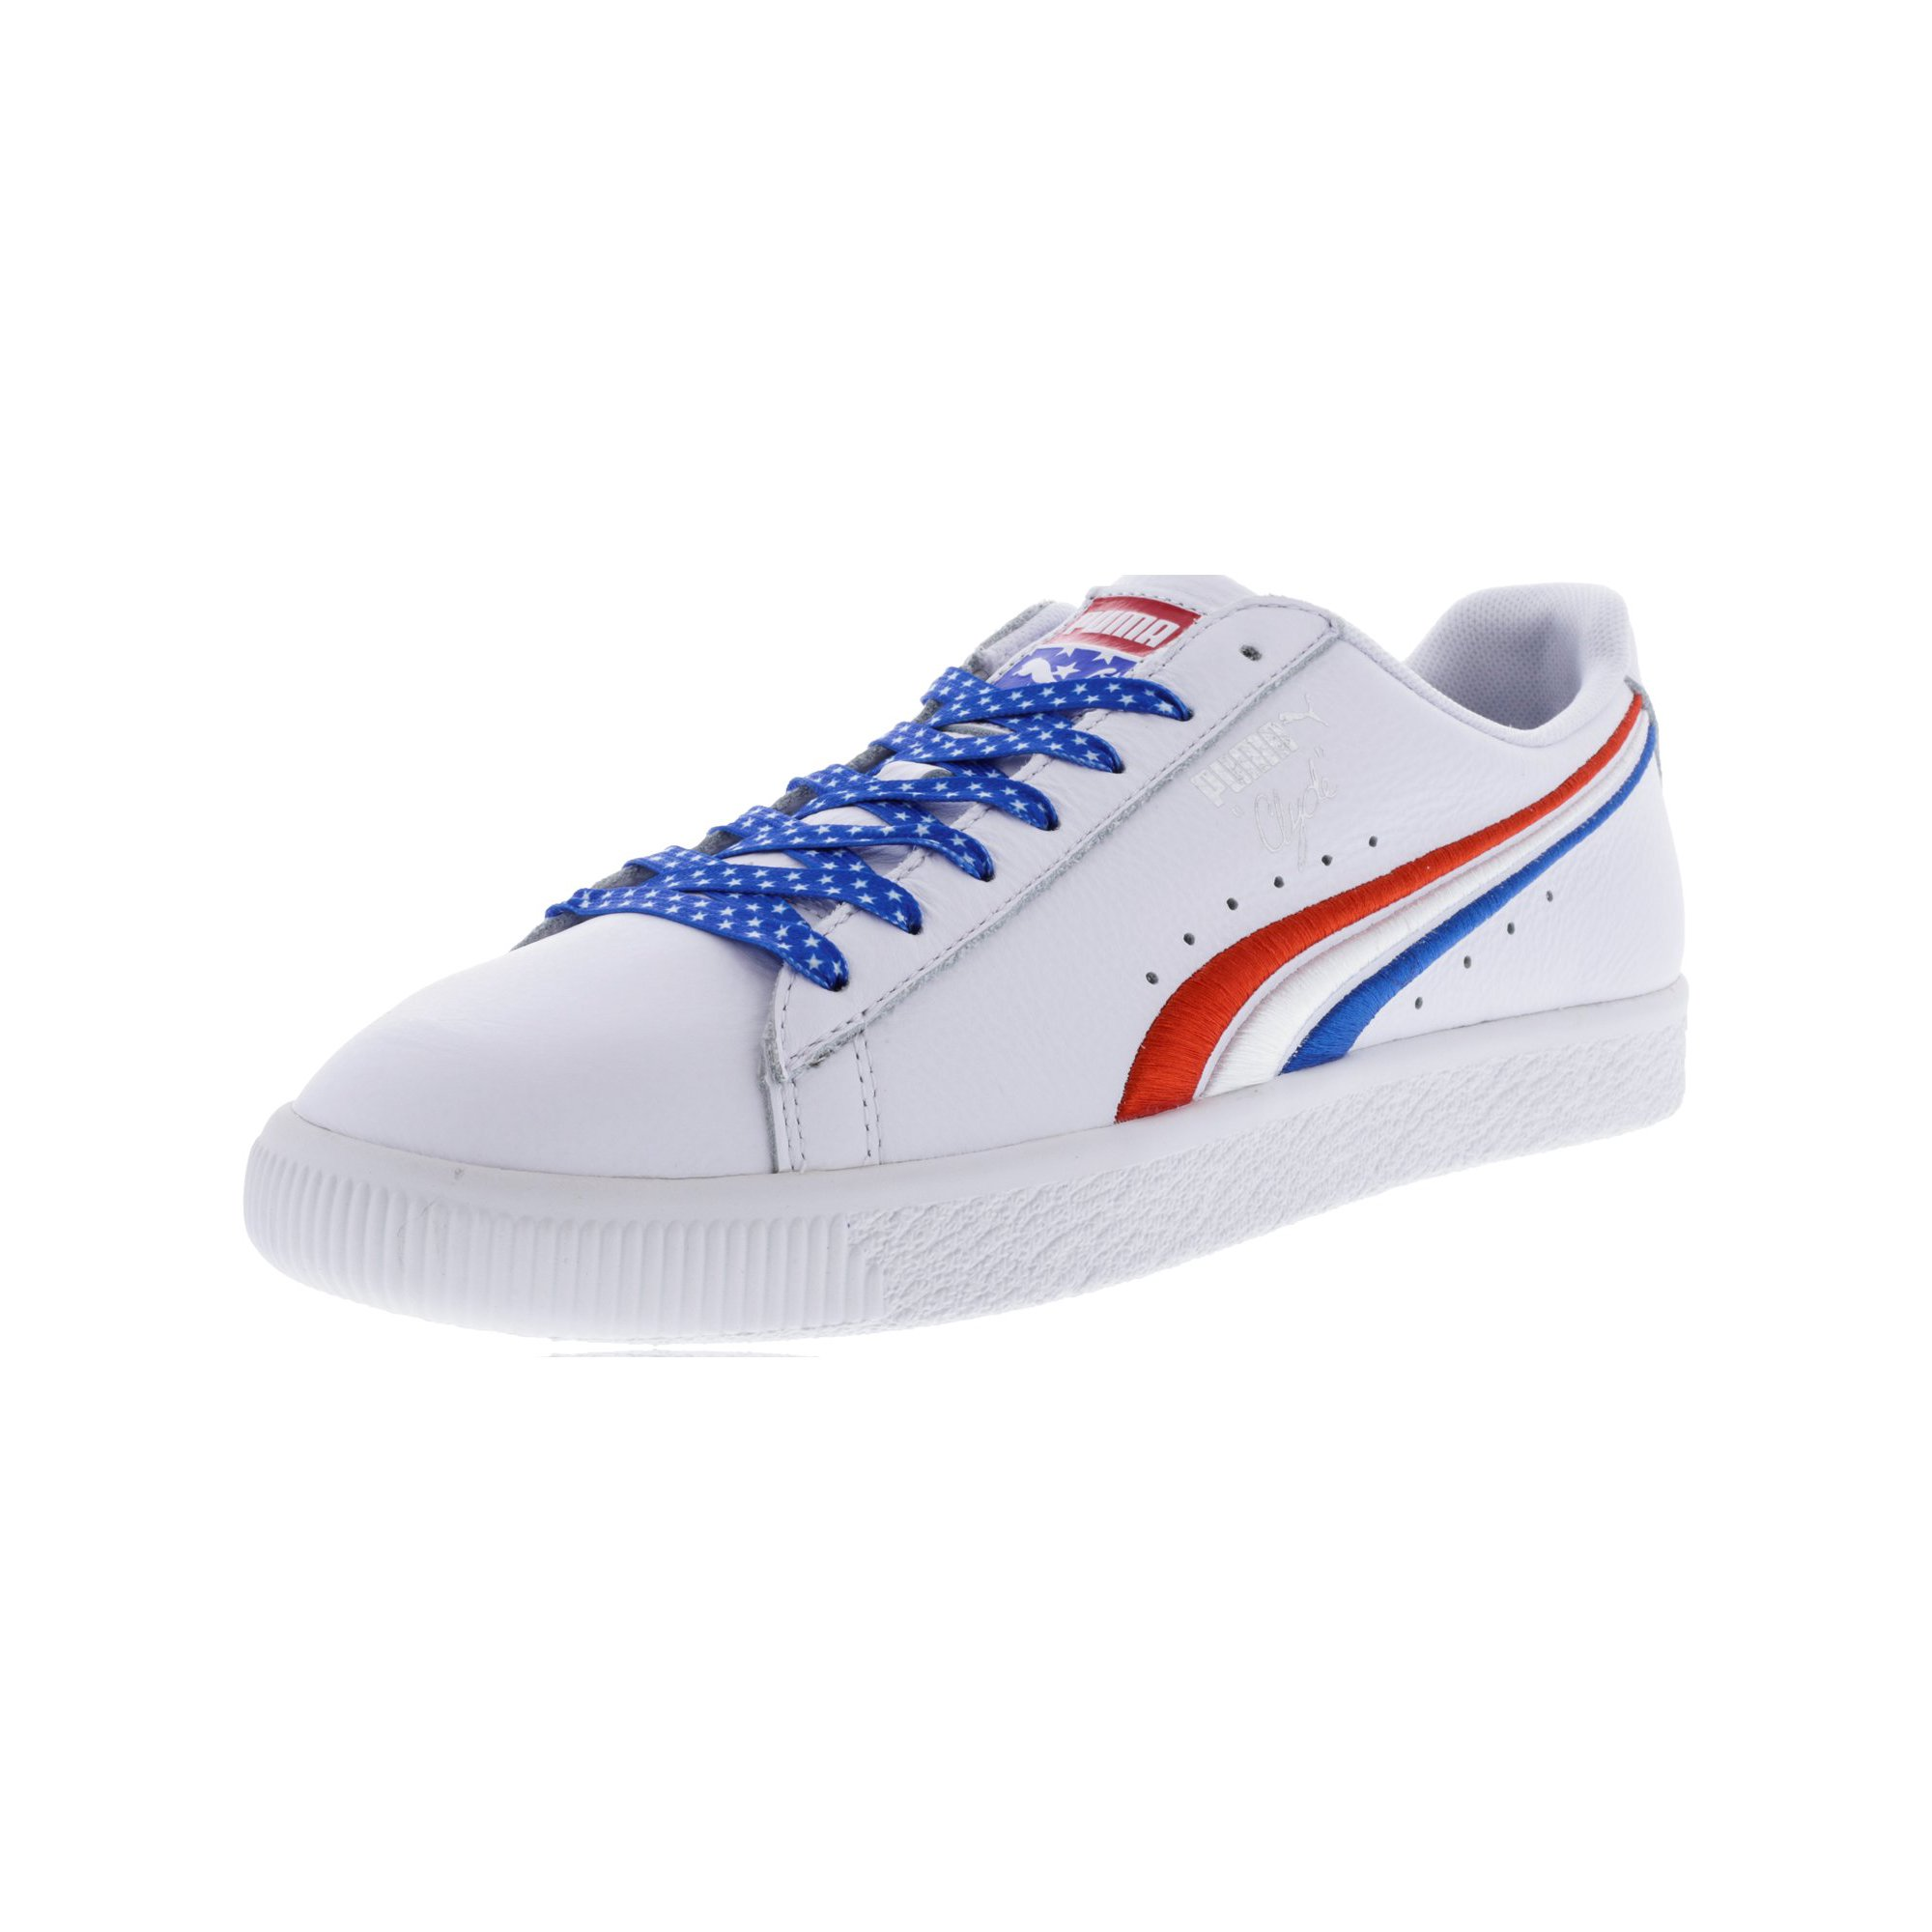 reputable site e1fdc 5b927 Puma Men's Clyde 4Th Of July High Risk Red / Royal White Ankle-High Leather  Fashion Sneaker - 10.5M